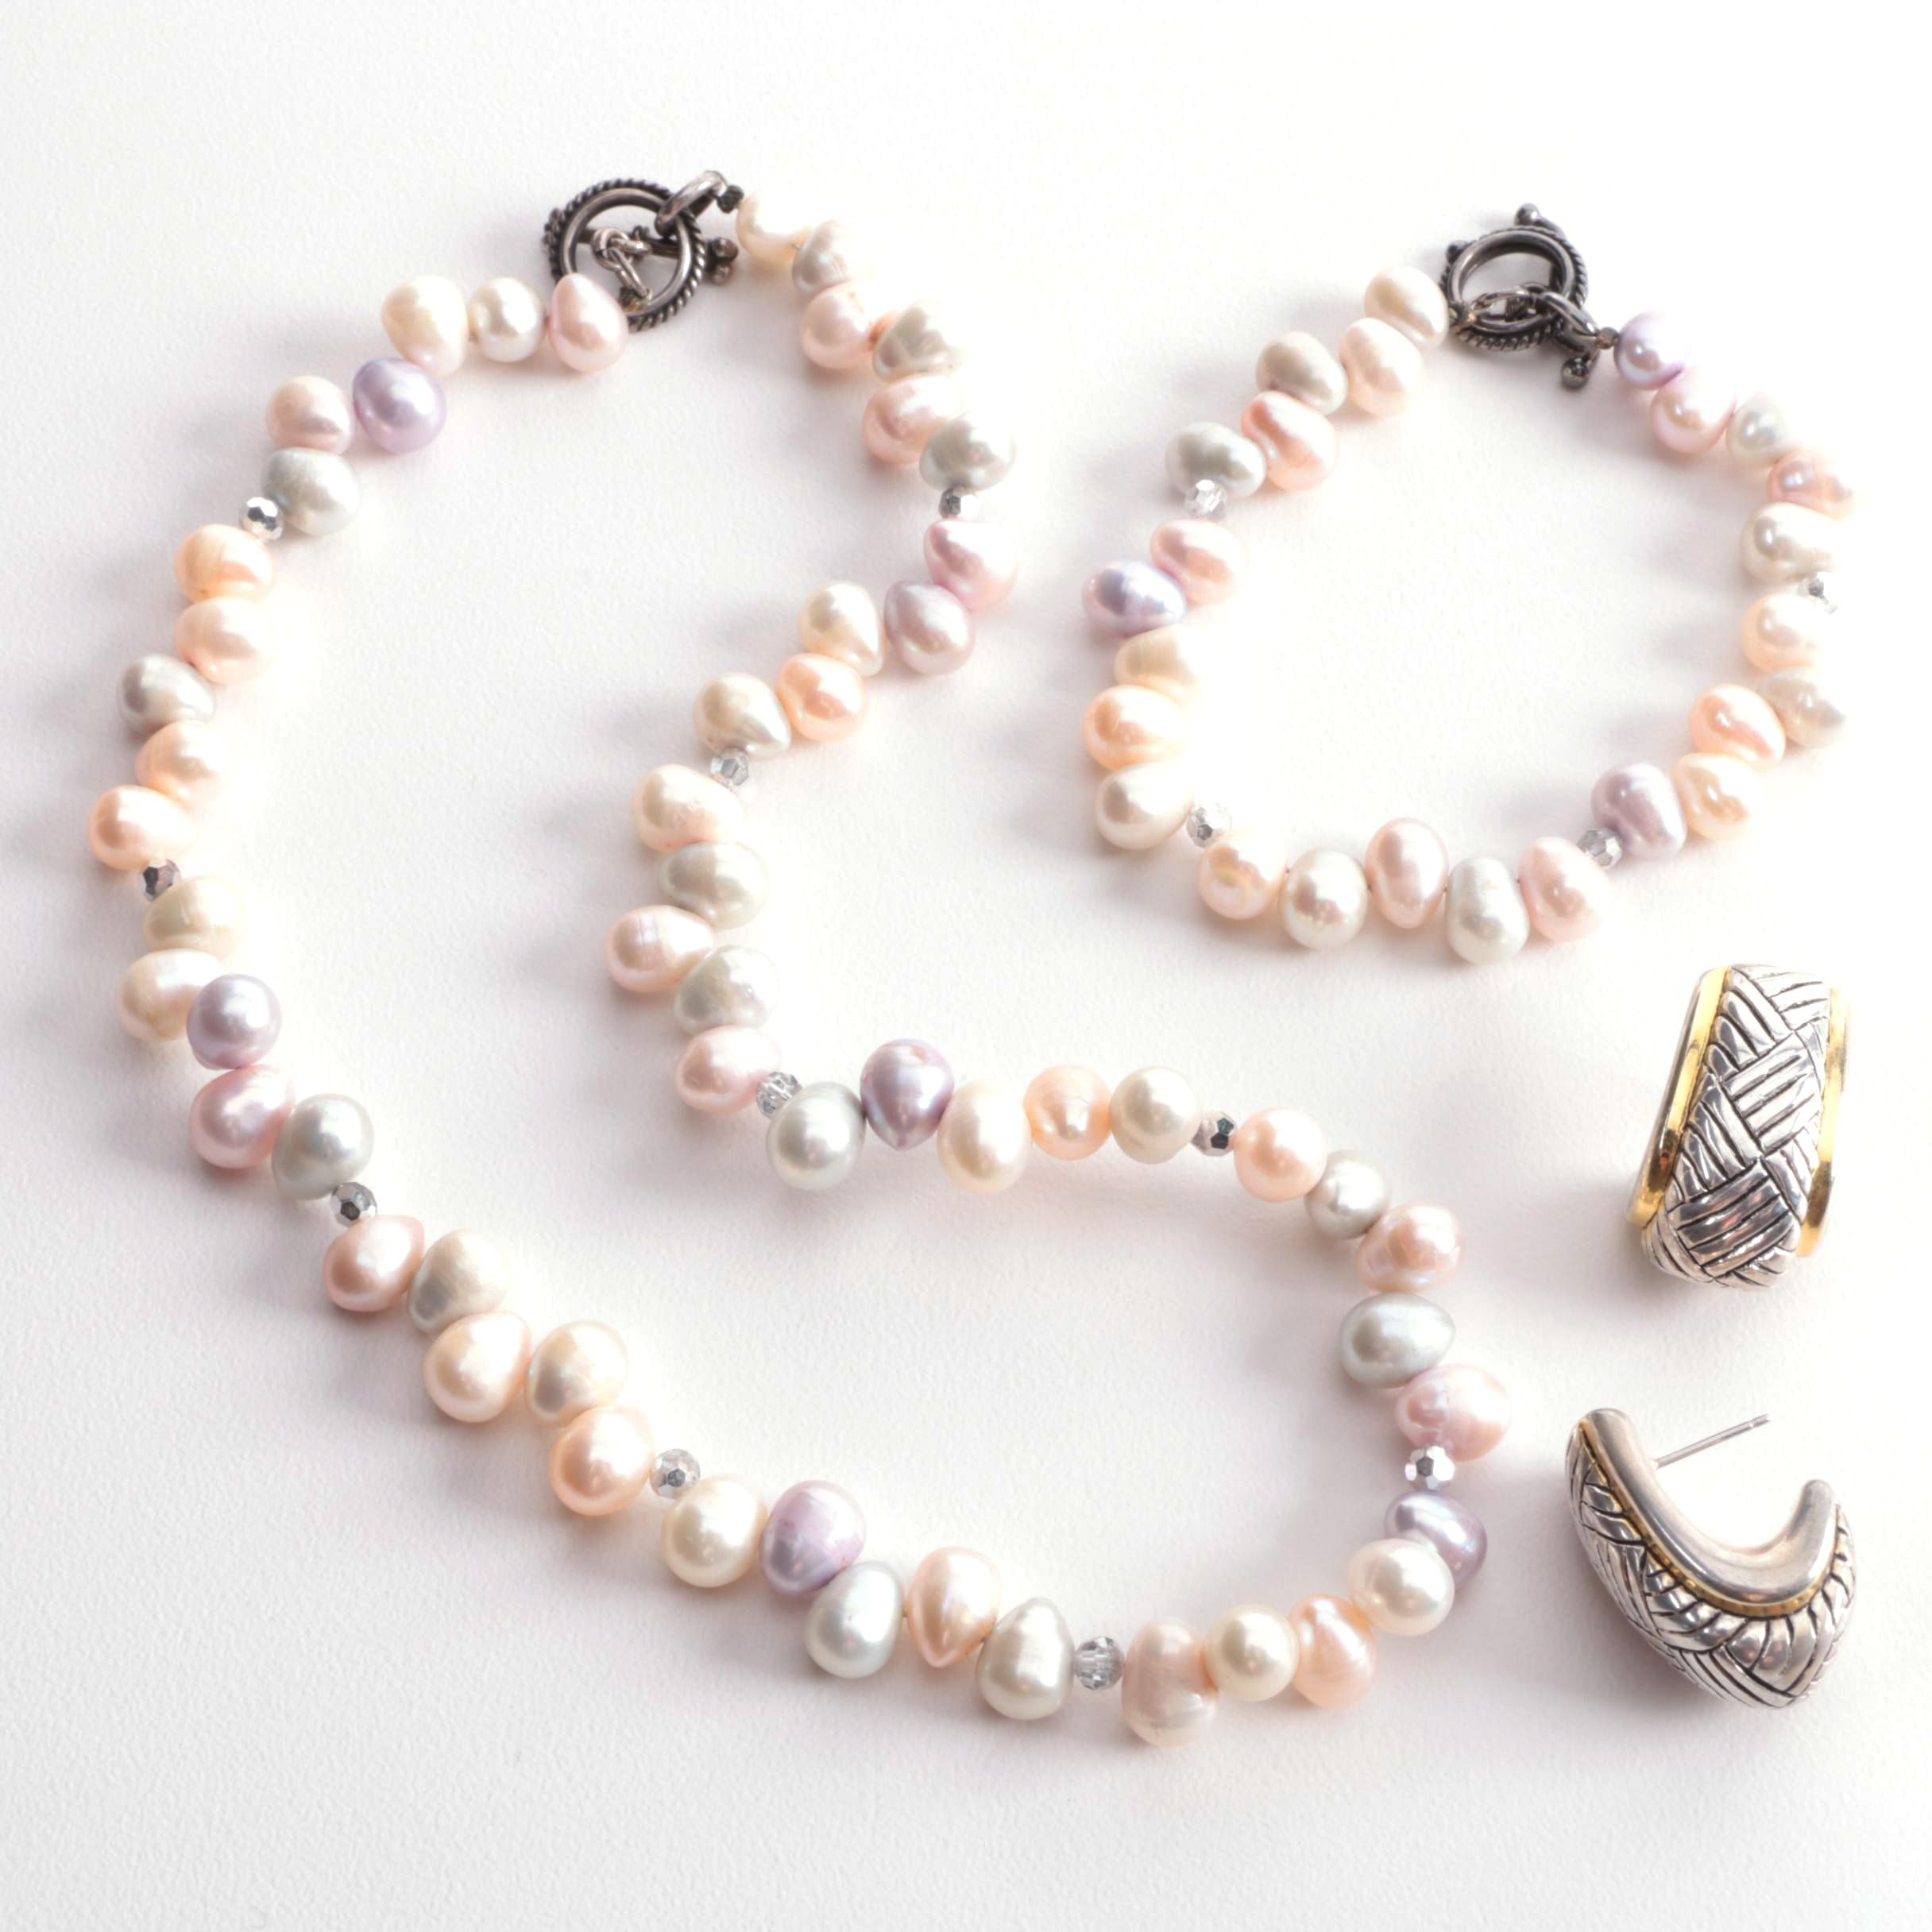 Sterling Silver Earrings with Cultured Pearl Necklace and Bracelet